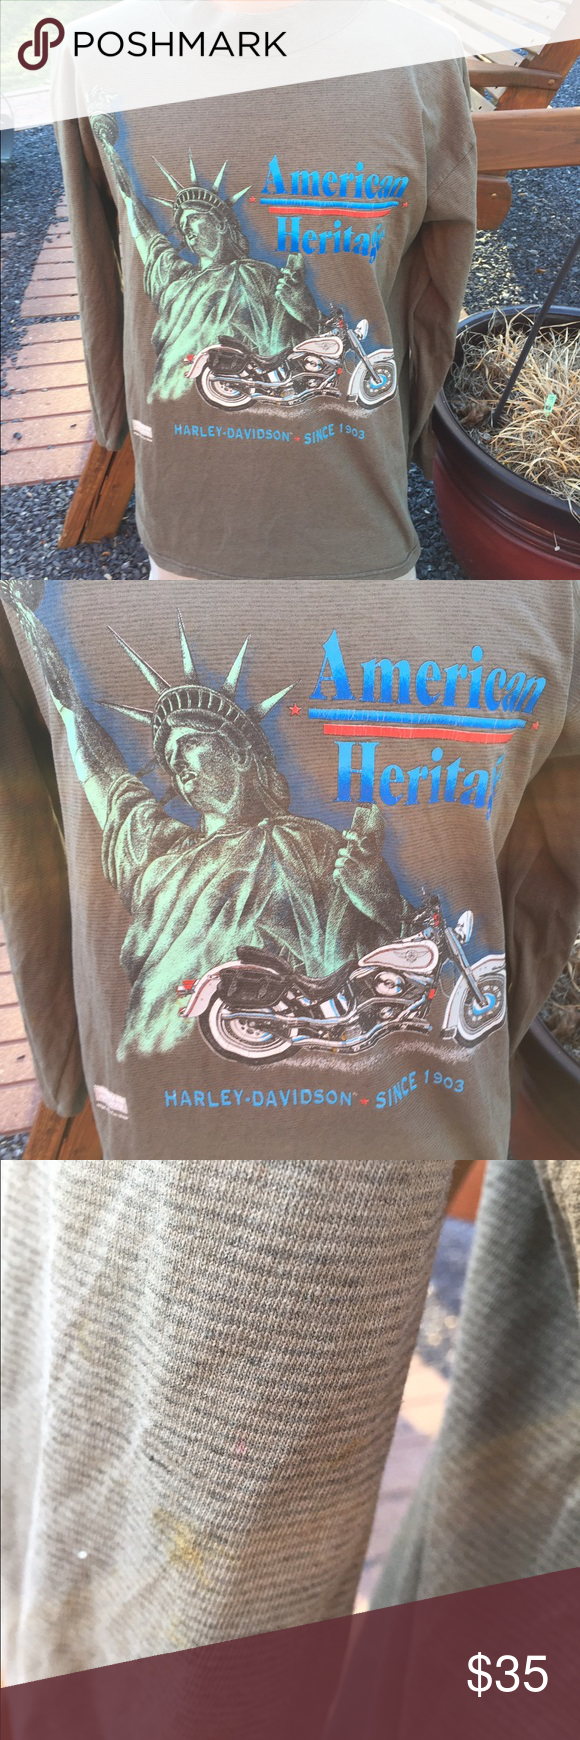 Harley Davidson Vintage 1980's Funwear Shirt Size large. Does have some minor spots here and there. Does show some wear around the collar. Still super awesome shirt Harley-Davidson Shirts Tees - Long Sleeve